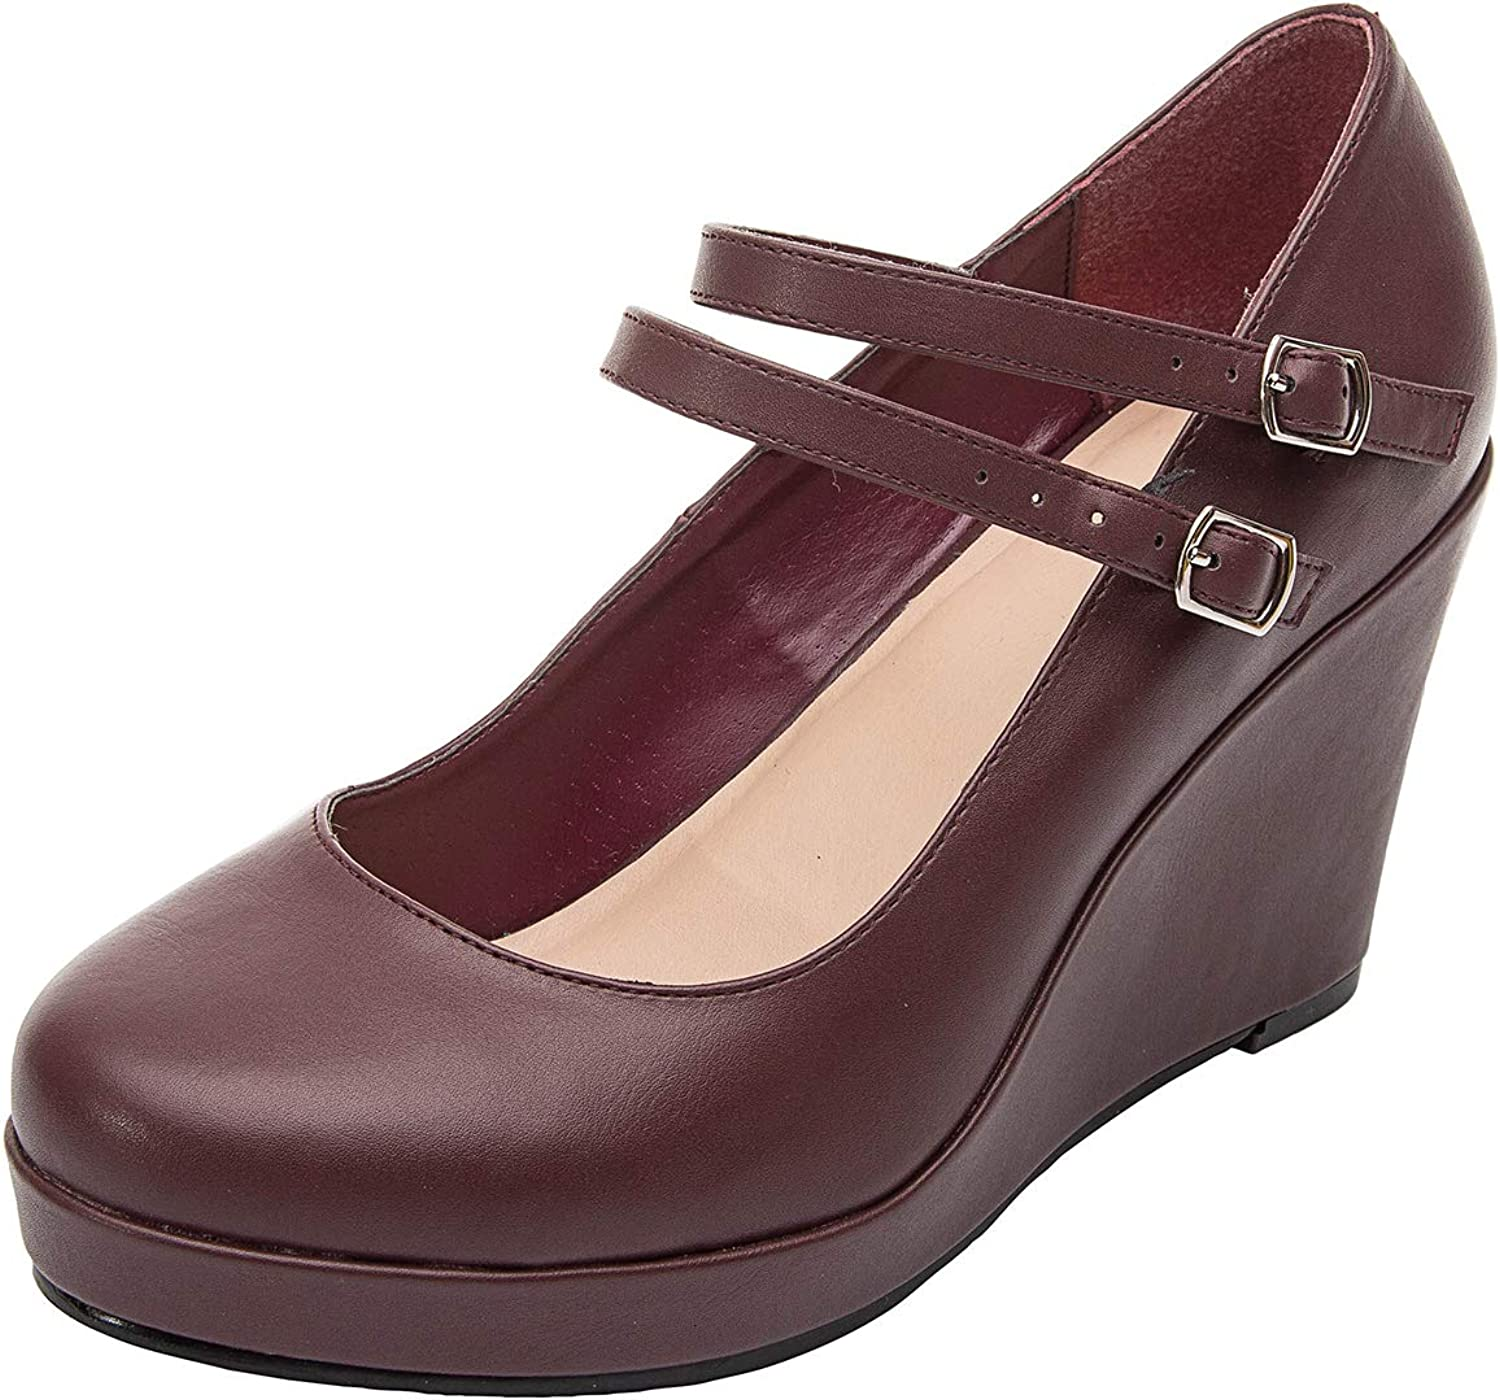 Ankle Boots for Women - Short Boots for Ladies w Low Chunky Block Stacked Heels Round Toe, Slip on Ankle Boots.